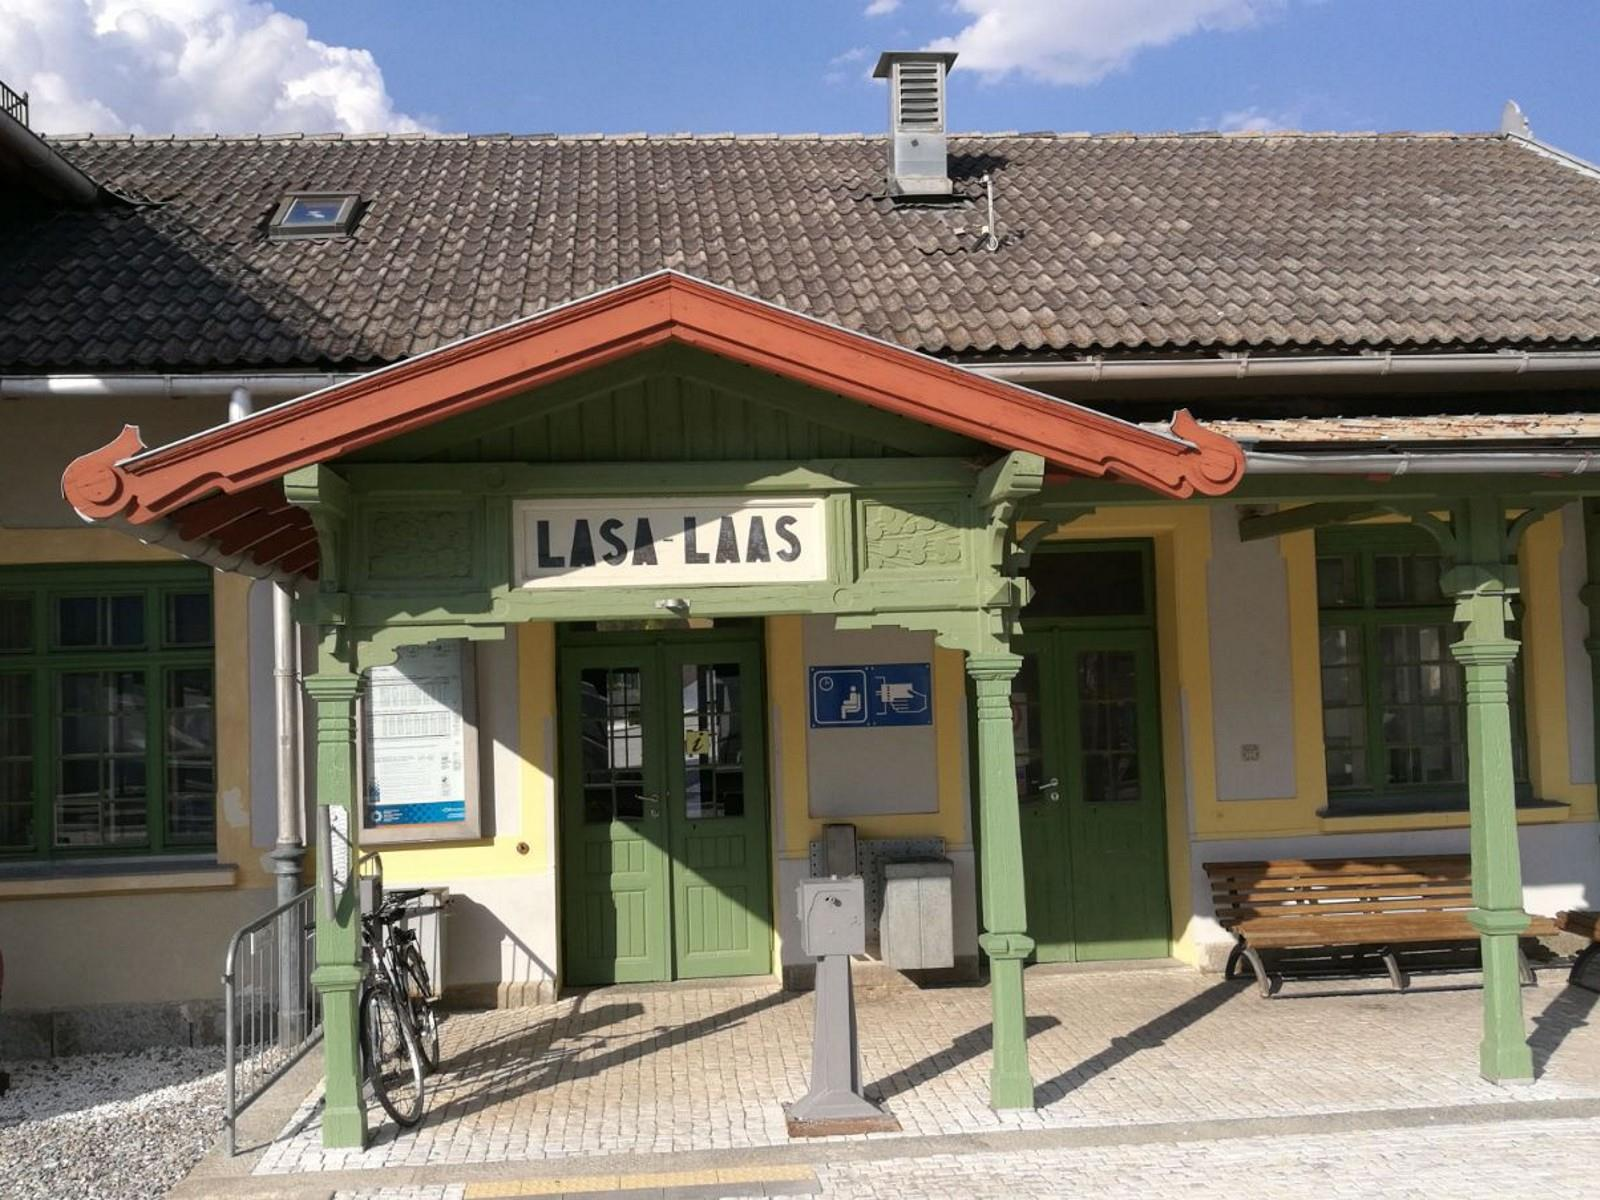 Tourist information in Lasa/Laas